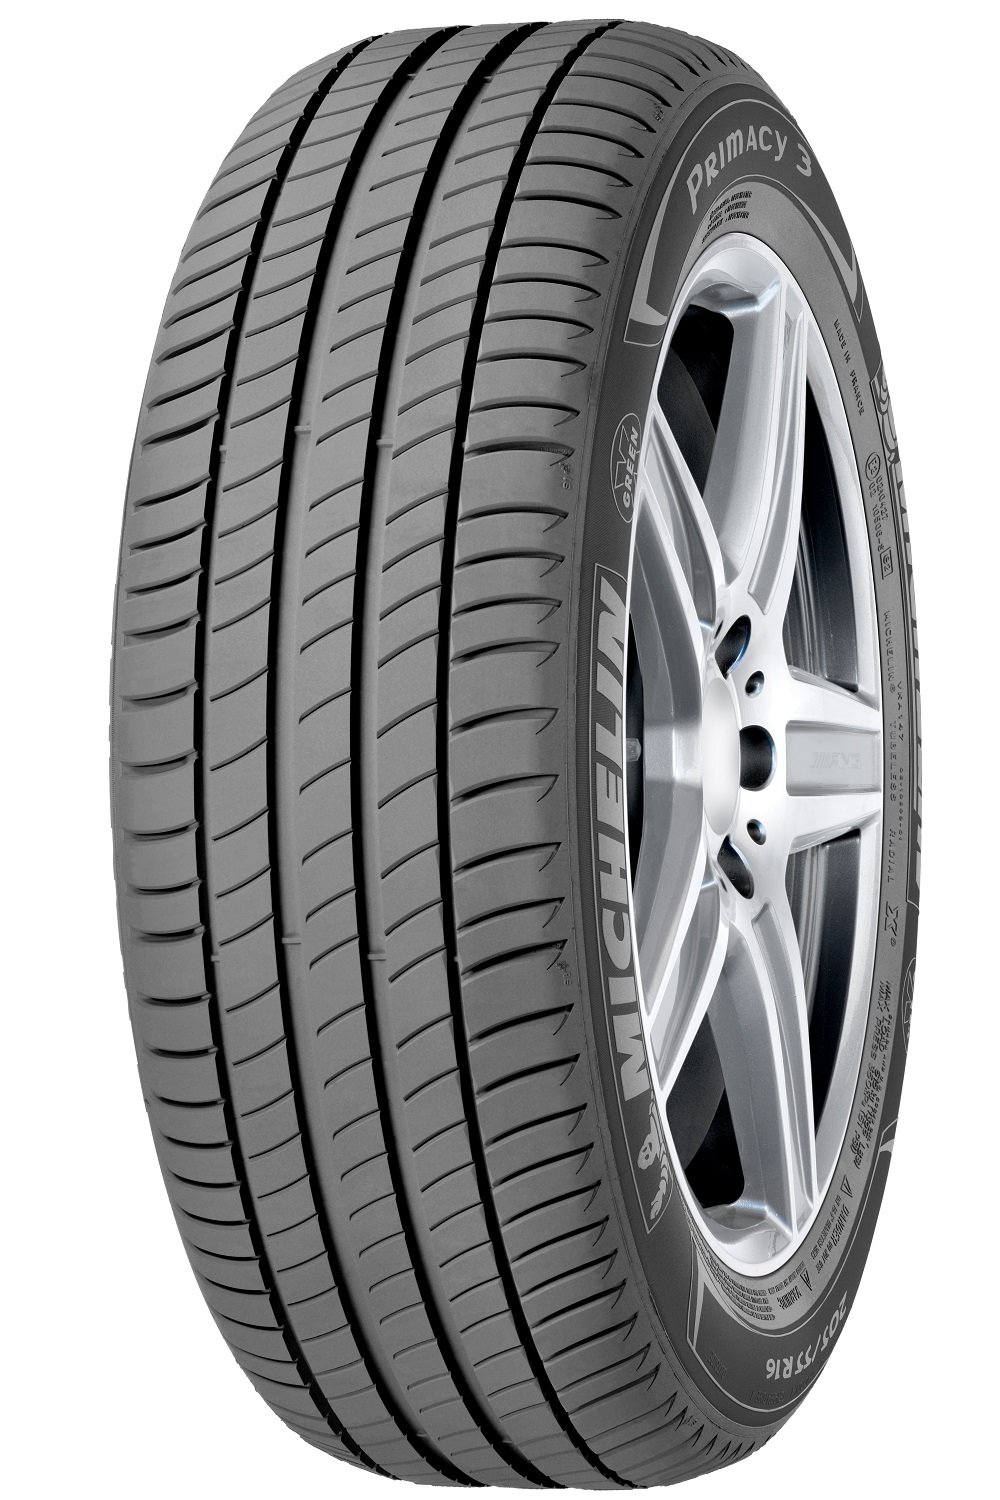 neumatico michelin primacy 3 205 45 17 88 v